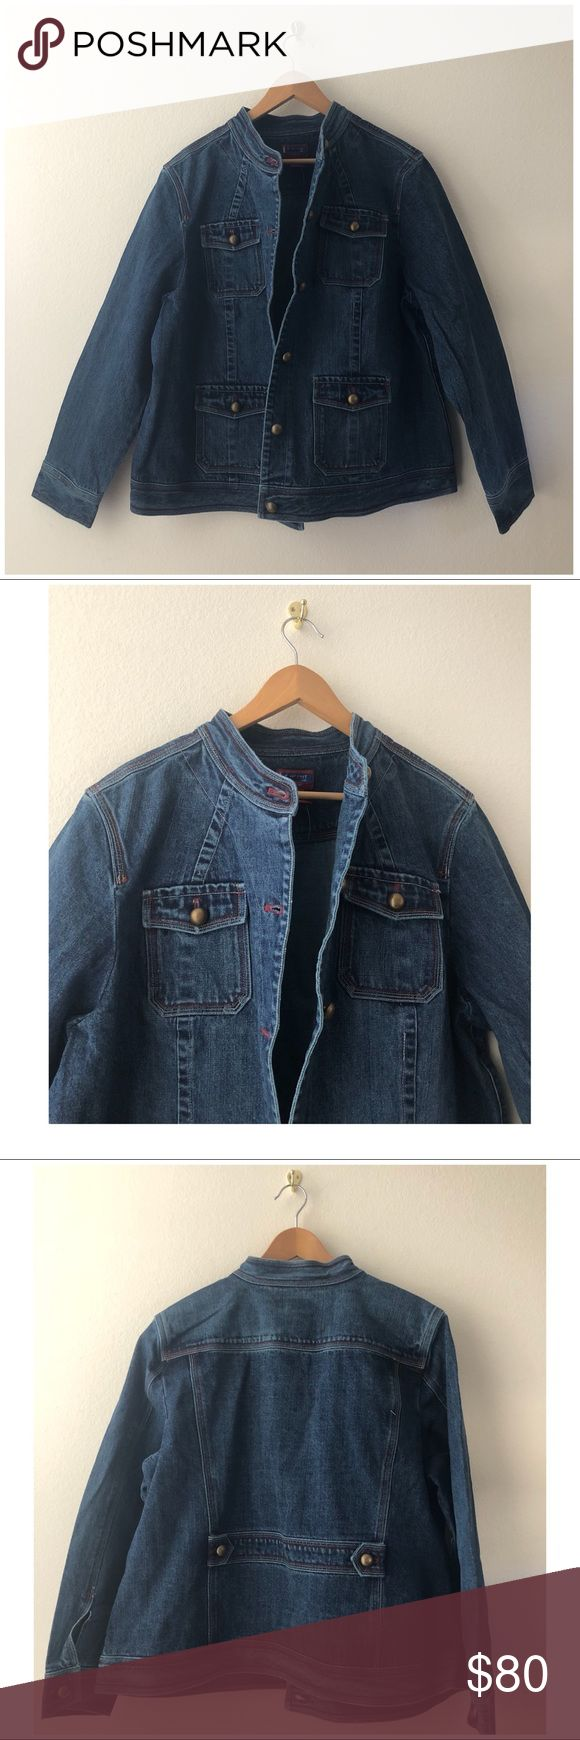 Women's Blue Denim Jacket Material: 100% Cotton. Thick and great for cold weather Jackets & Coats Pea Coats